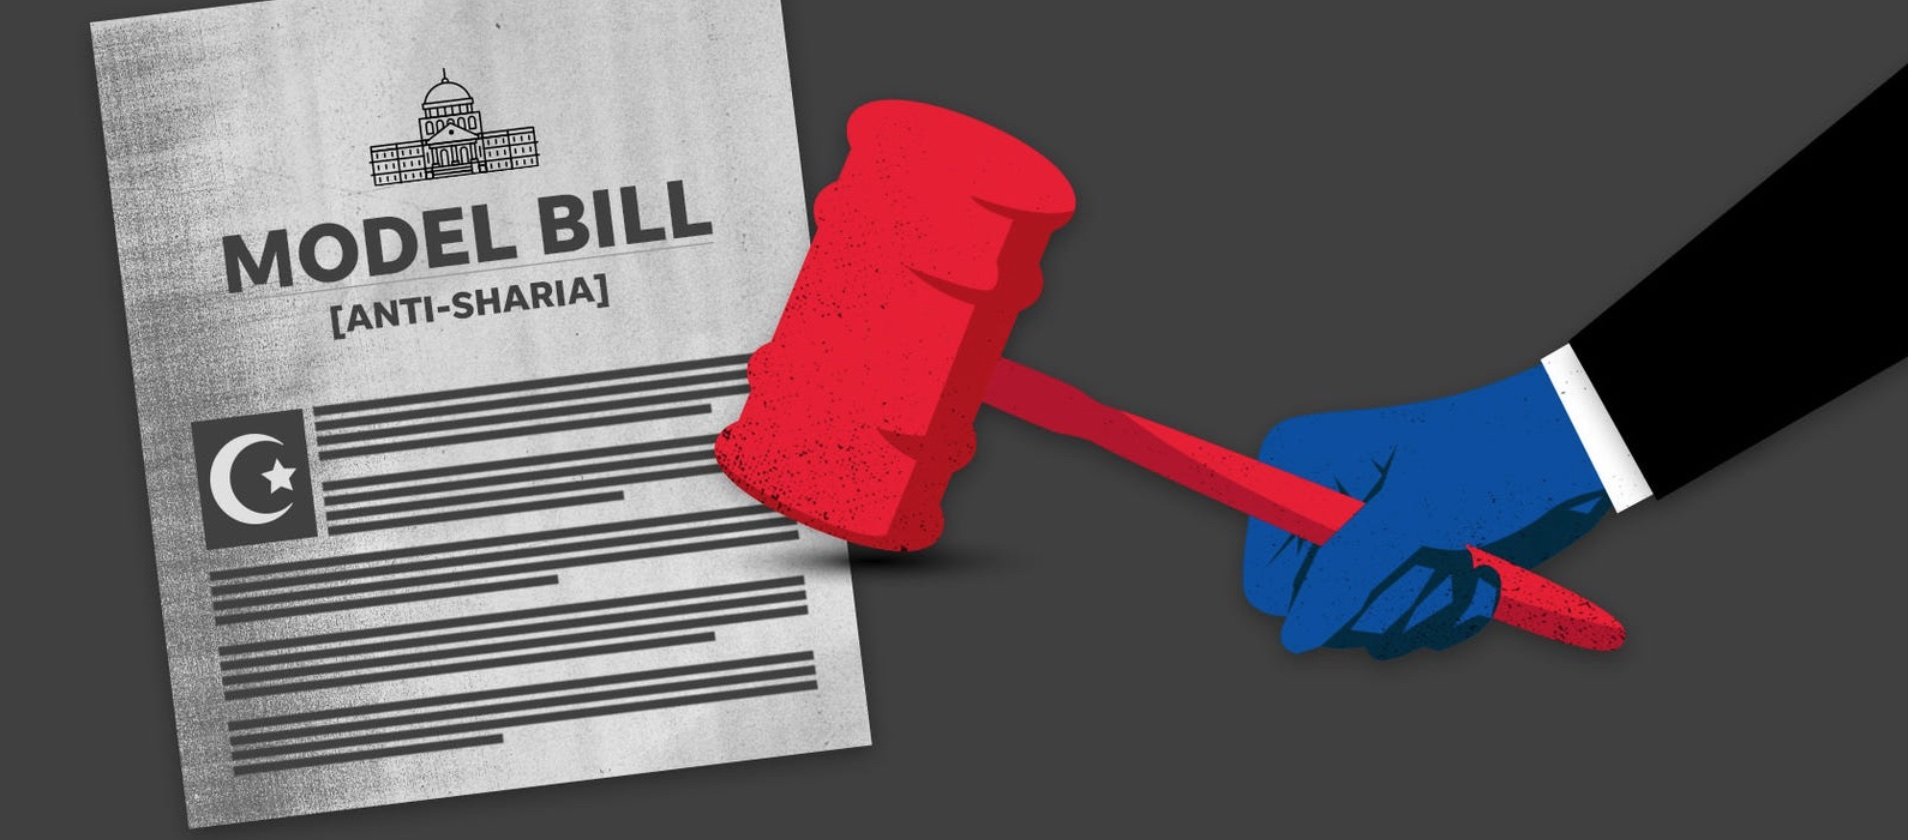 These copycat bills on sharia law and terrorism have no effect. Why do states keep passing them?